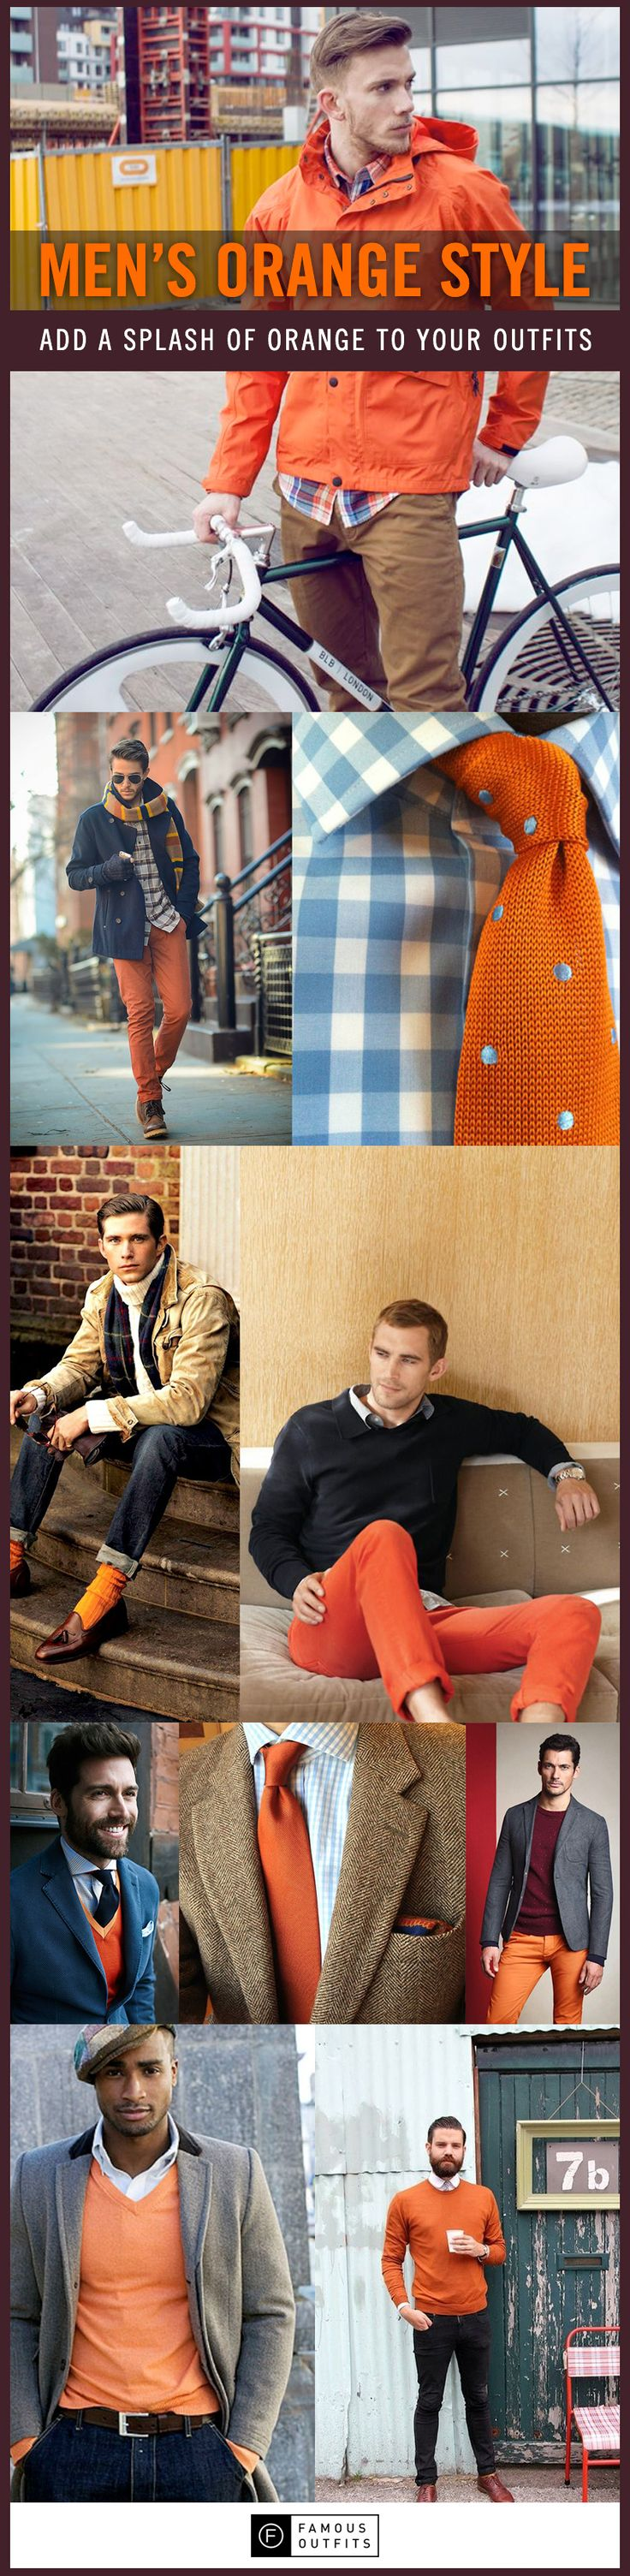 Who says pumpkins are only for fall? Orange is a great color that you can wear to make a splash! You will draw some looks, so make sure you are confident in what you are wearing.